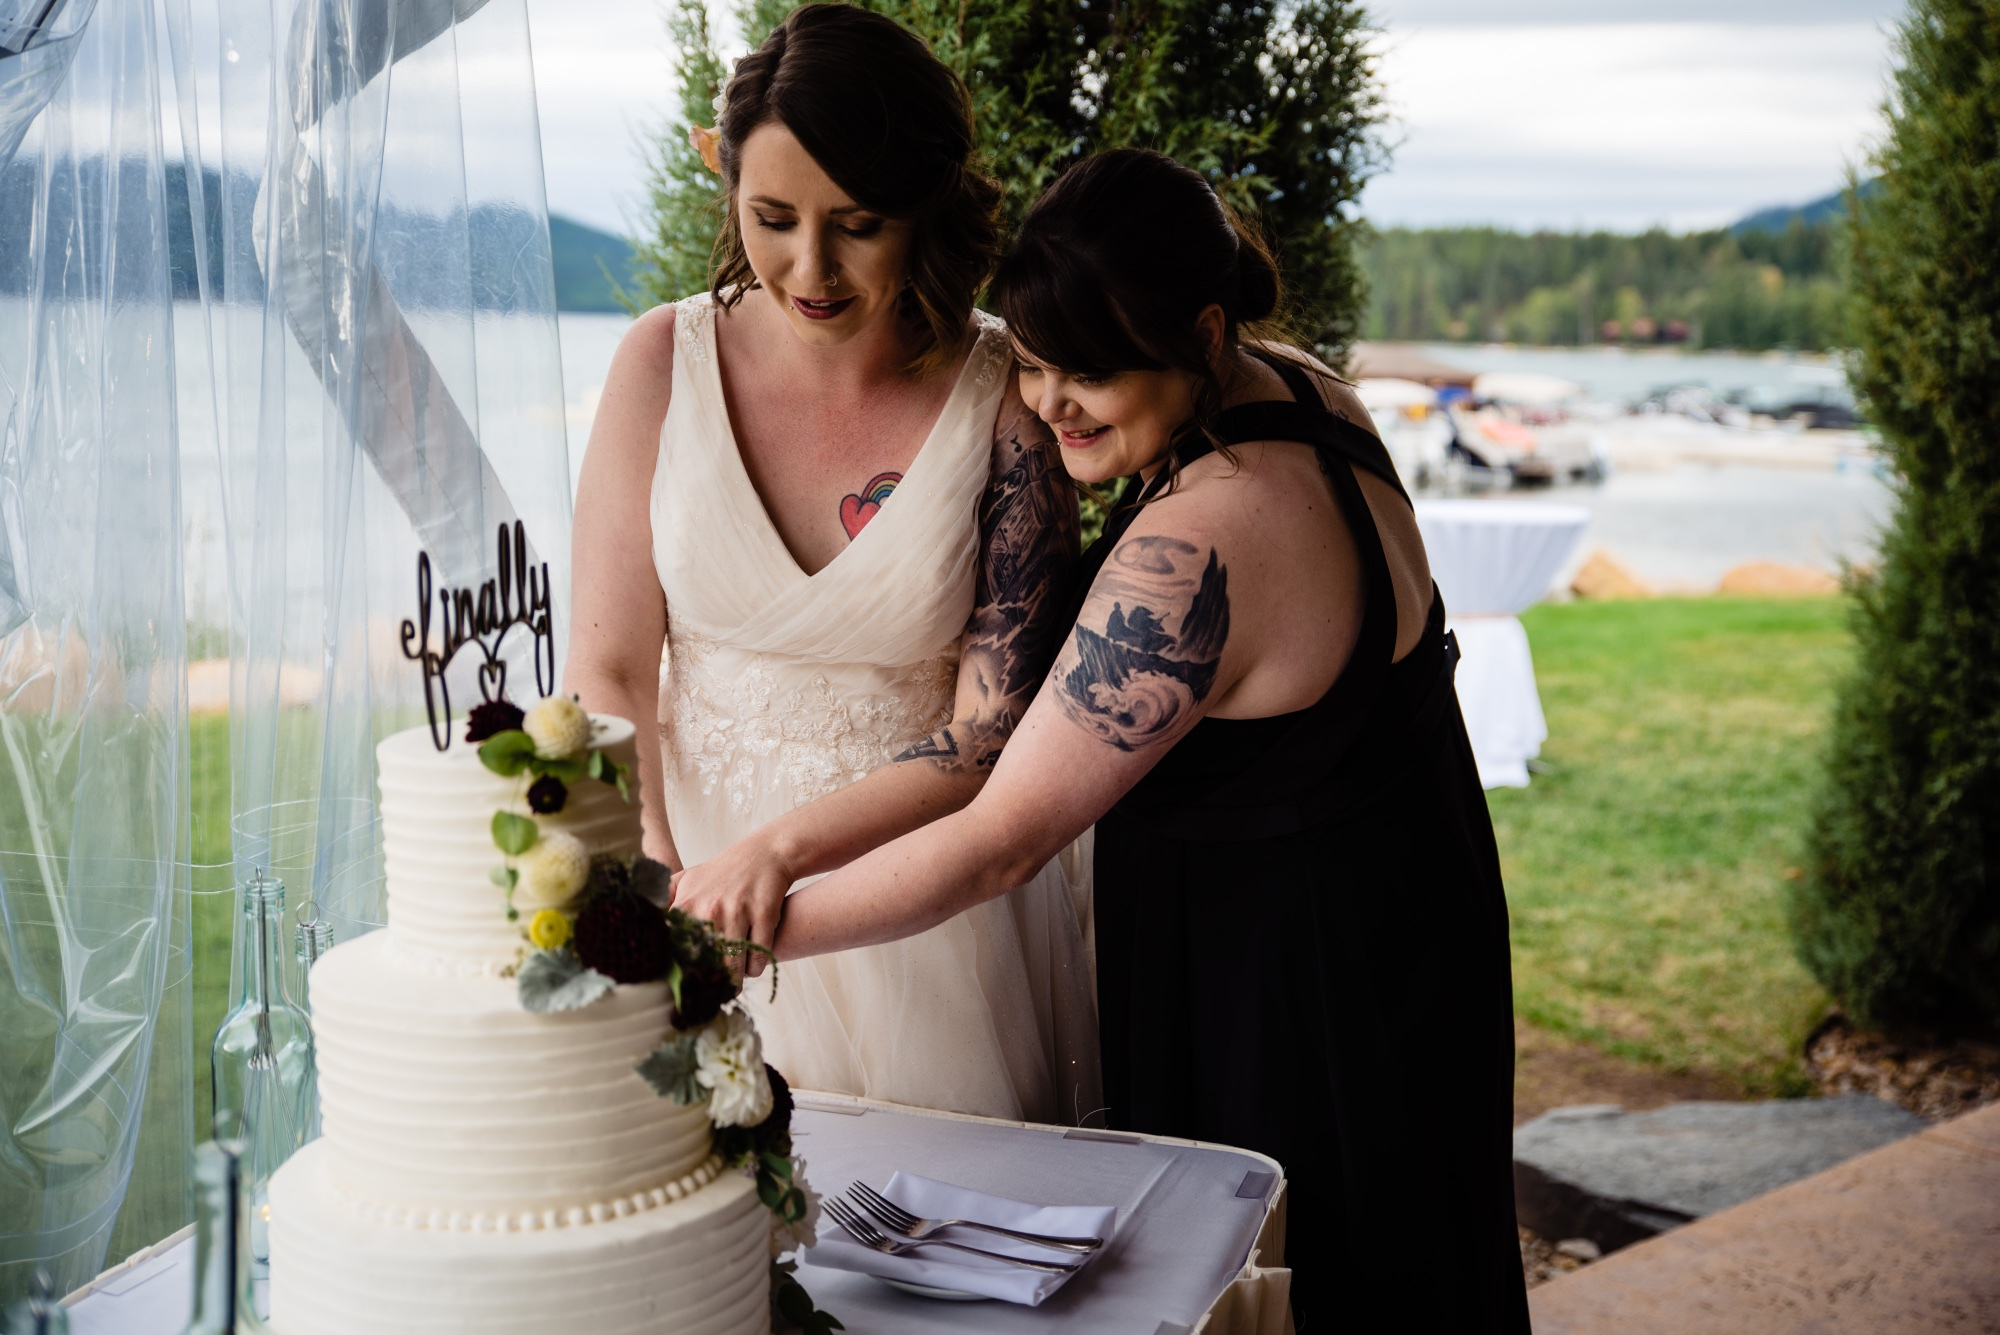 lindseyjanephoto_wedding0092.jpg